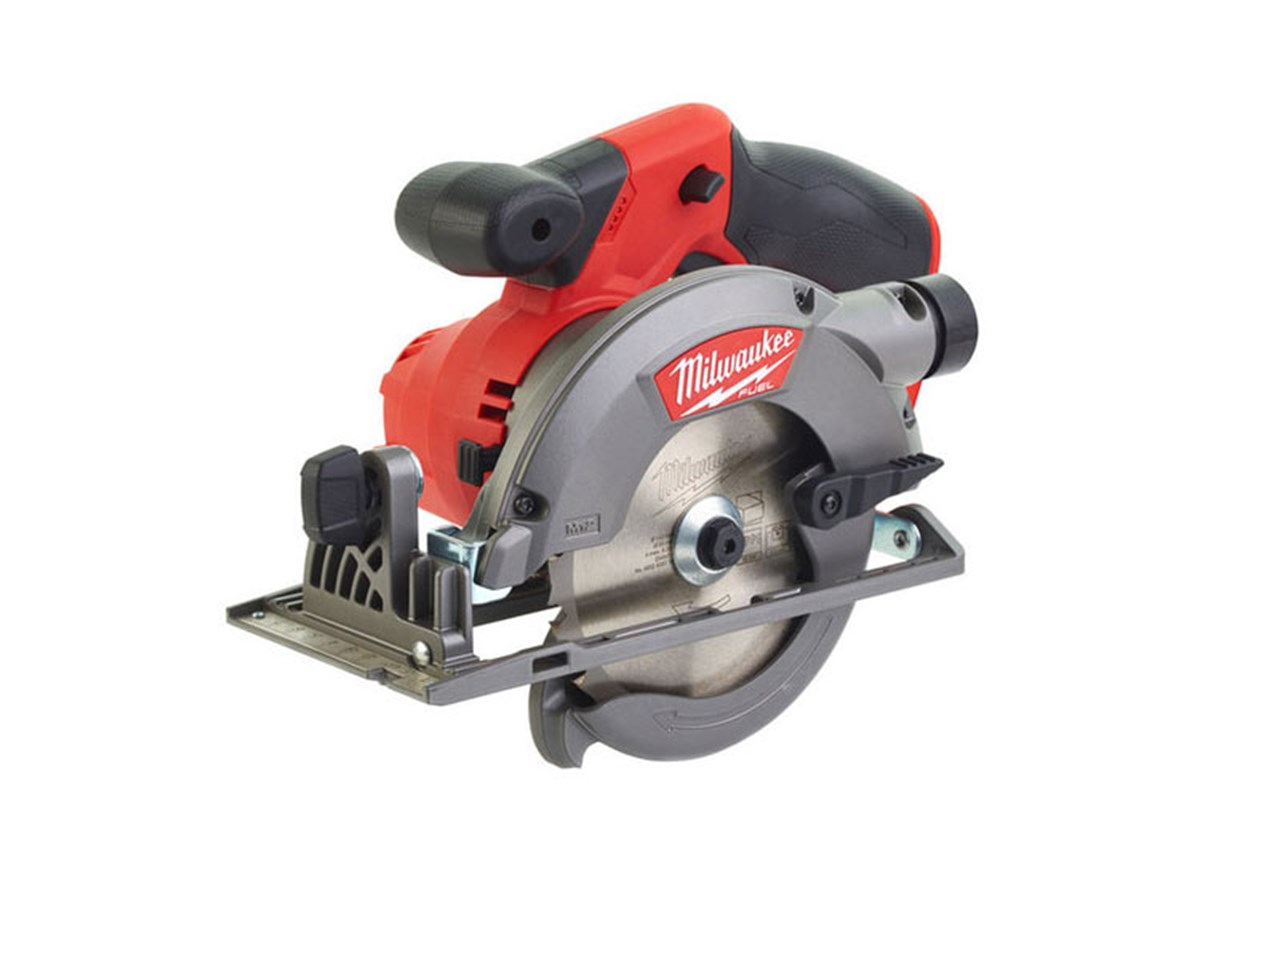 Milwaukee m12ccs44 0 m12 fuel 12v compact circular saw bare unit greentooth Image collections